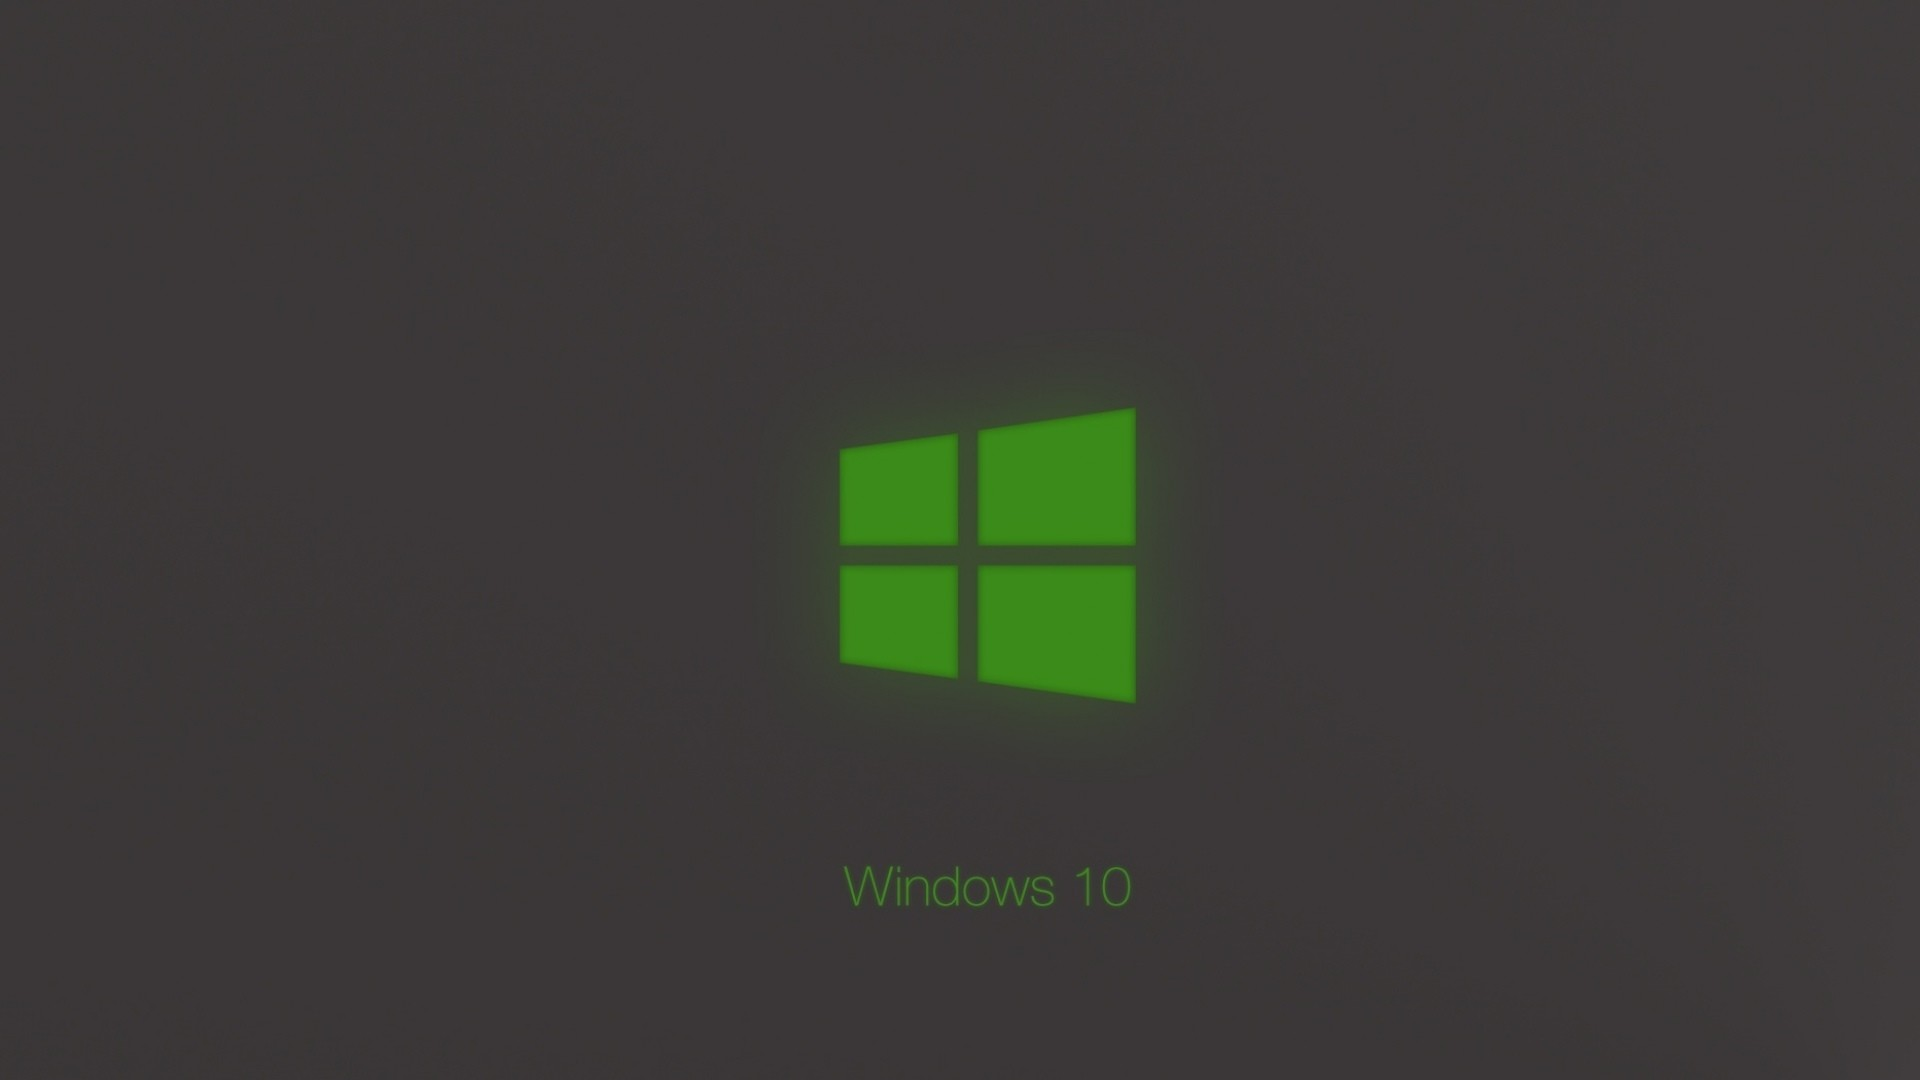 Res: 1920x1080, Windows 10 Technical Preview Green Glow Wallpaper